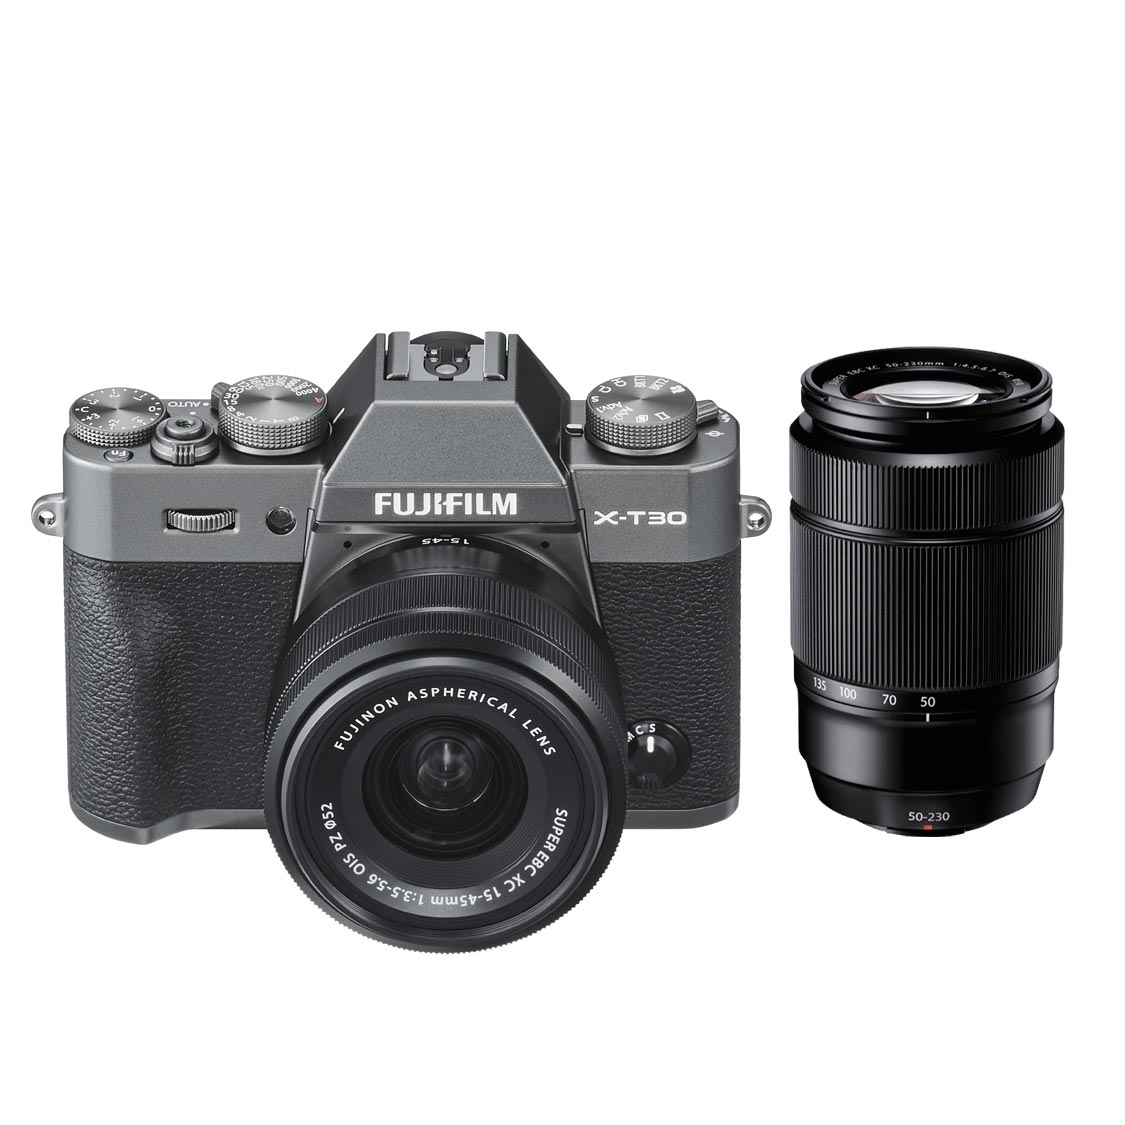 Fujifilm X-T30 Camera (charcoal) with 15-45mm and 50-230mm Lenses